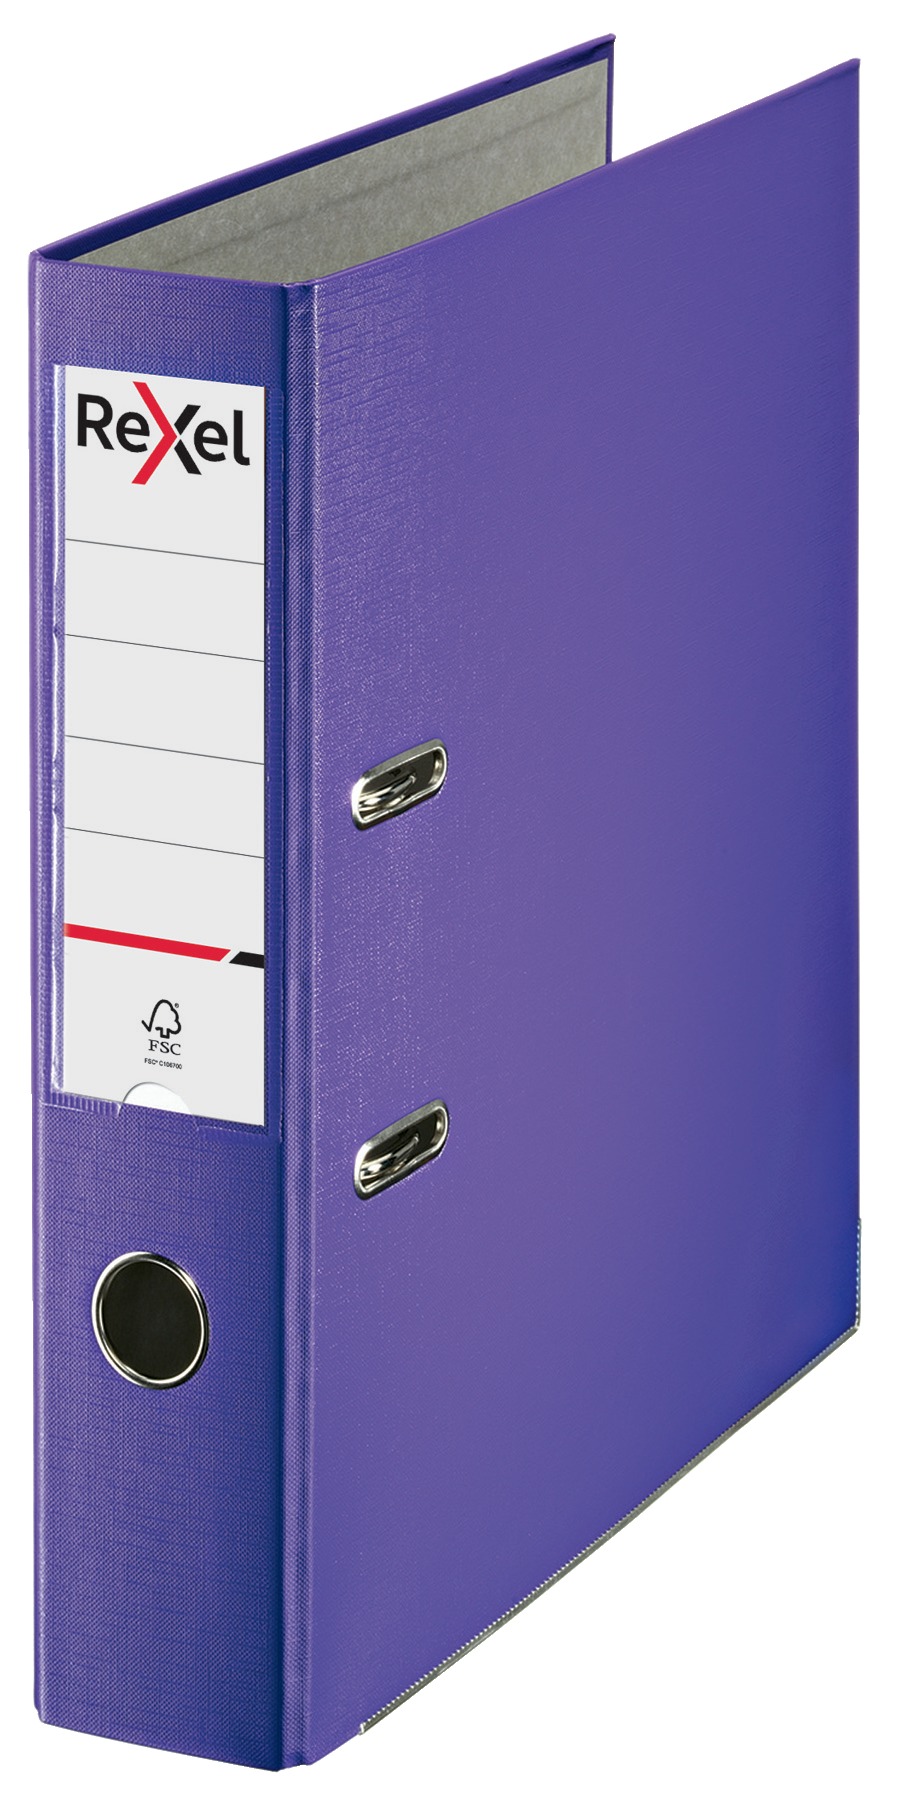 Lever Arch Files Rexel Lever Arch File ECO Polypropylene A4 75mm Spine Width Purple